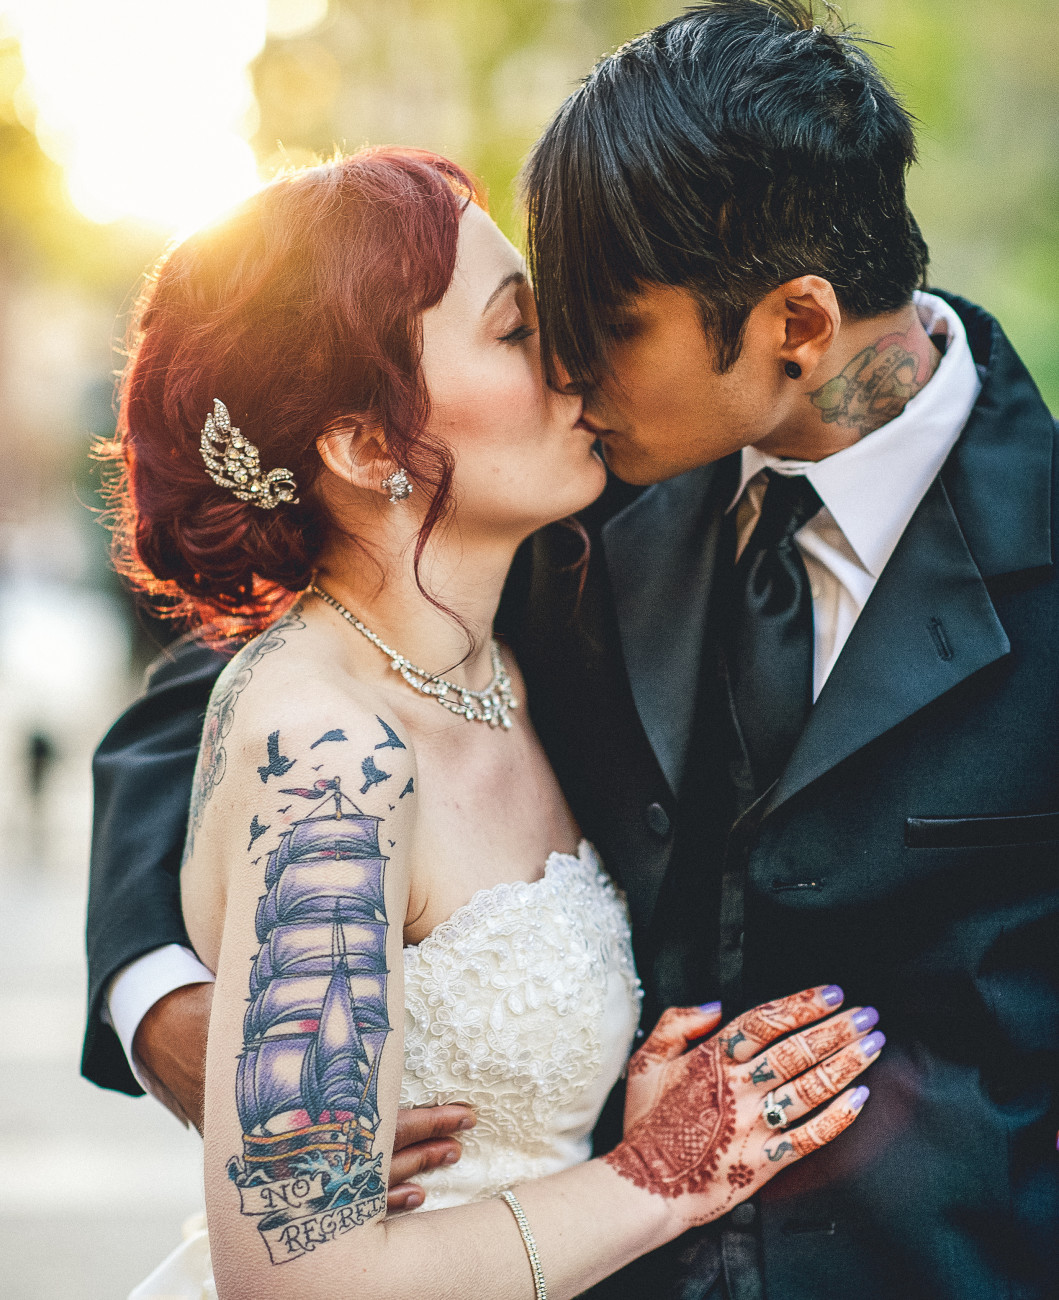 Tattooed Couple Kissing on Their Wedding Day